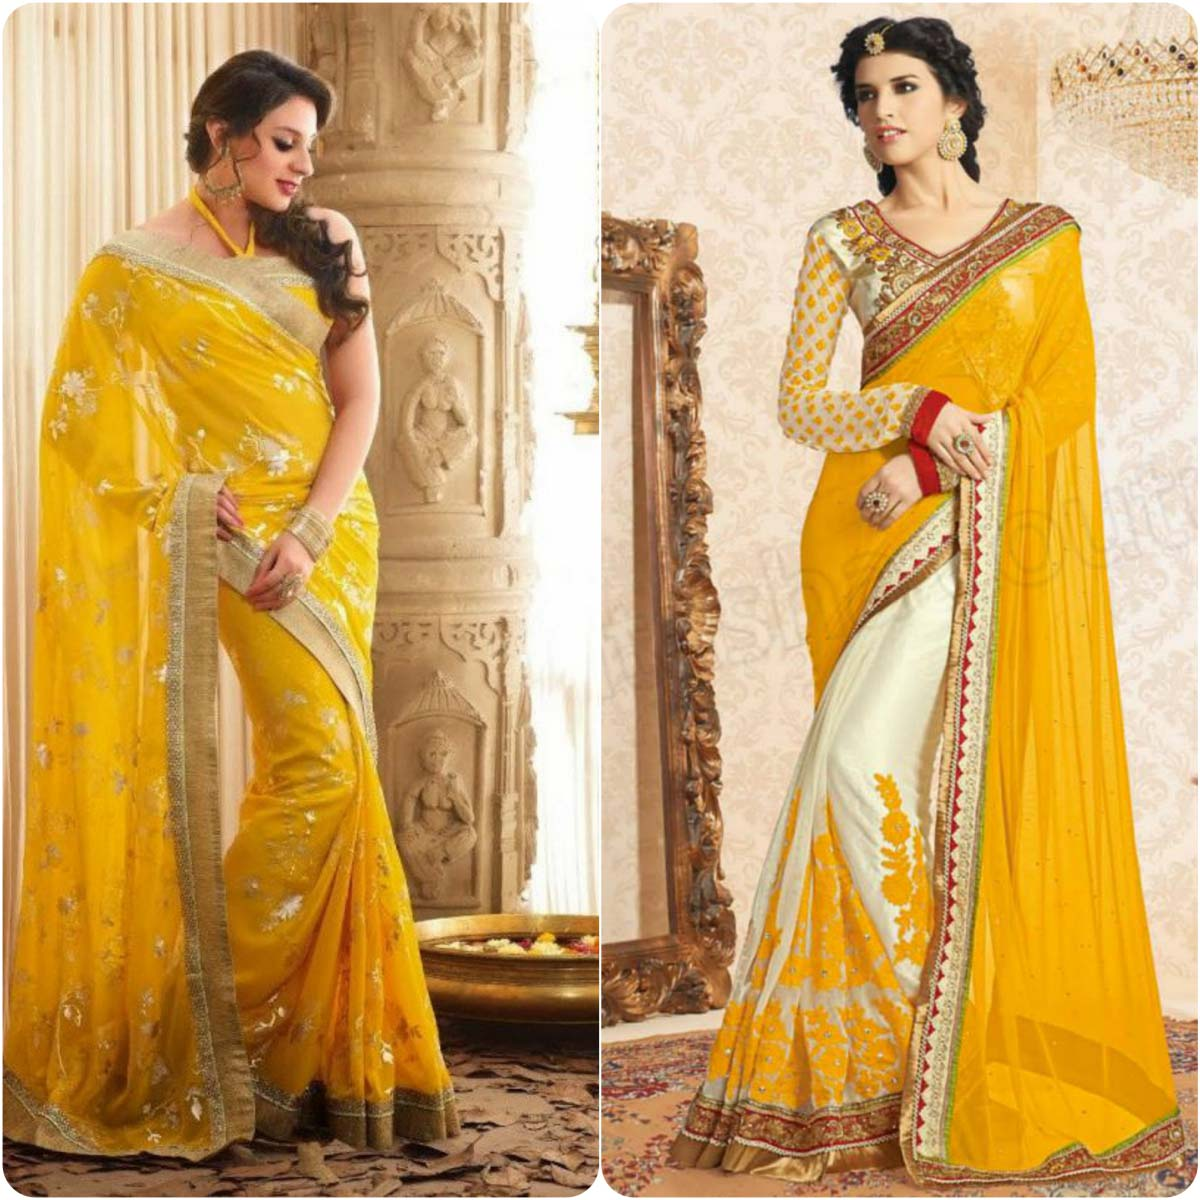 Beautiful Yellow Mehndi Dresses for Wedding Brides 2016-2017 (12)